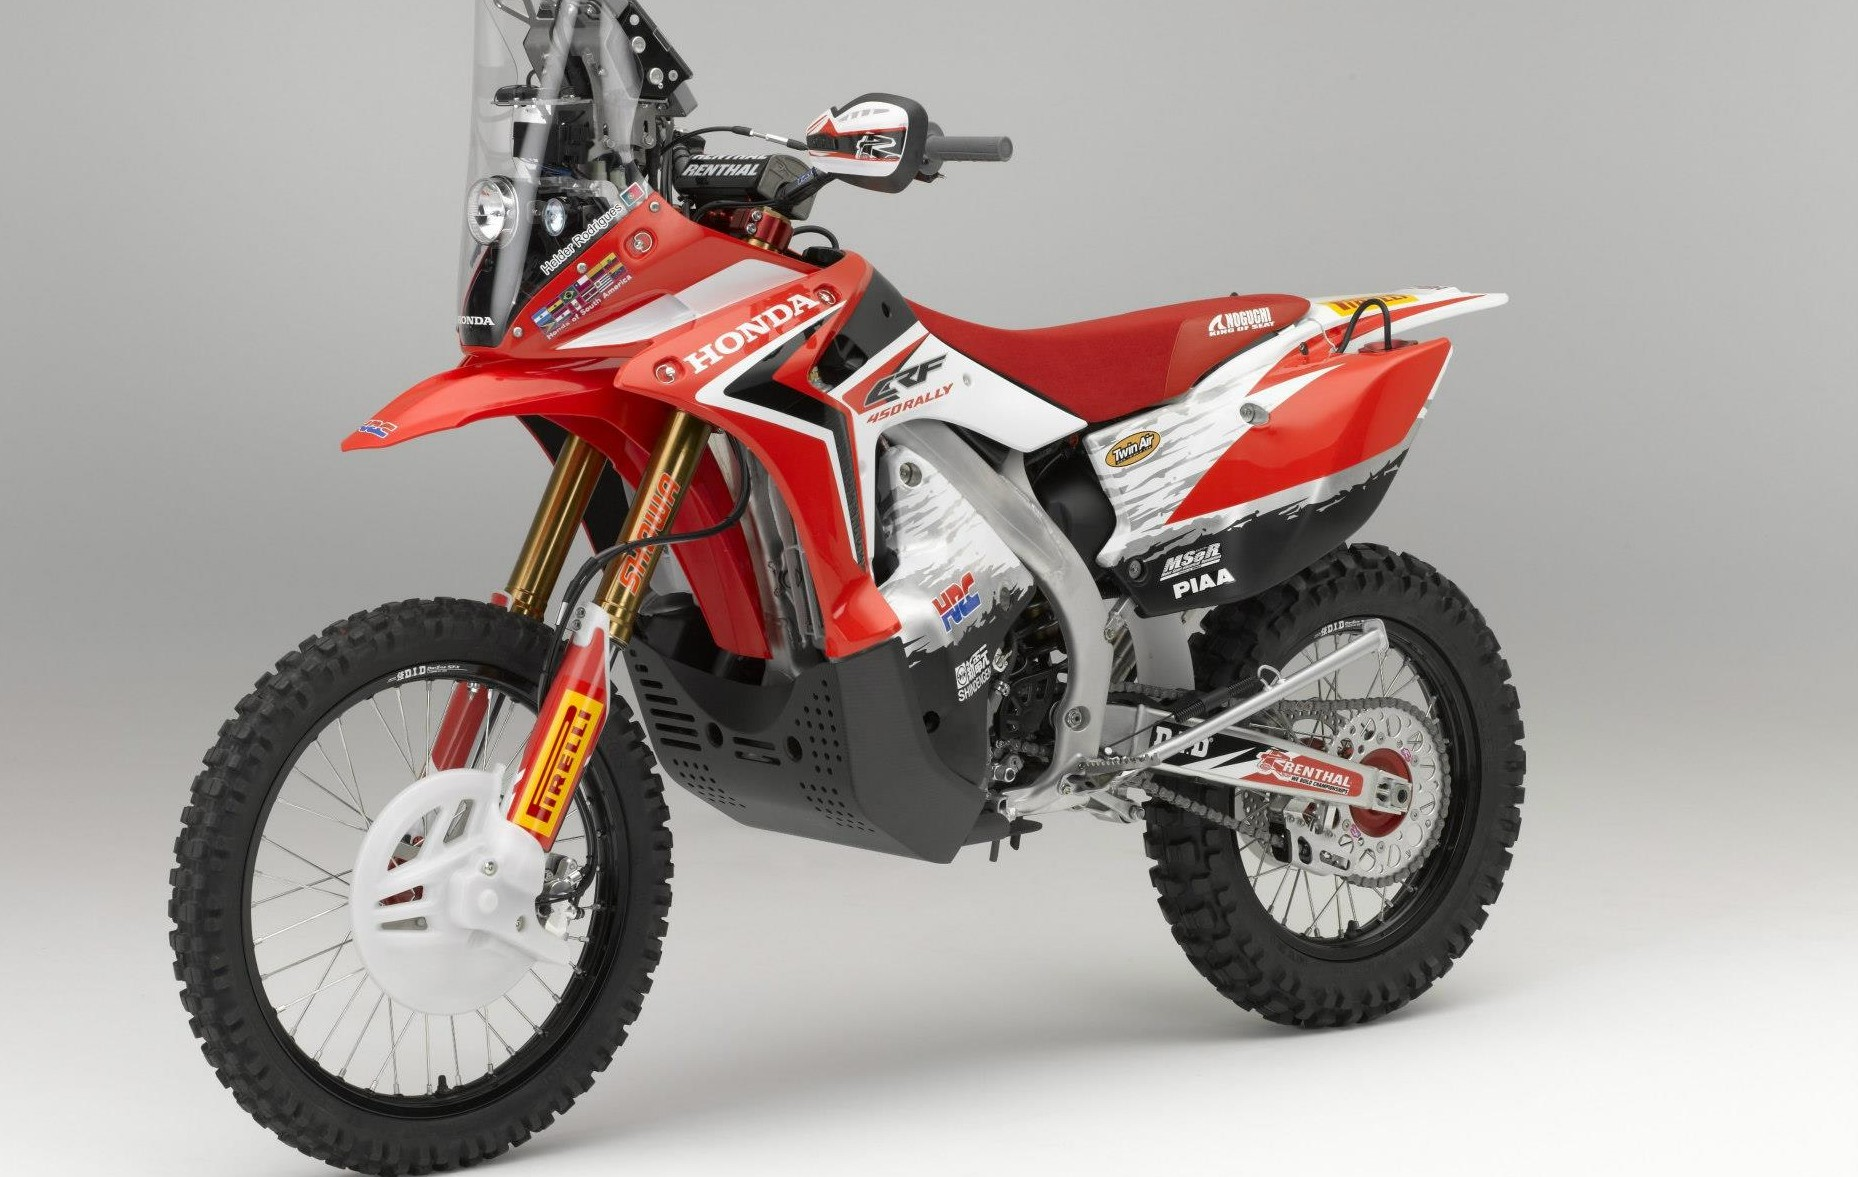 Honda Crf 450 Dakar Model Debut Enduro360com